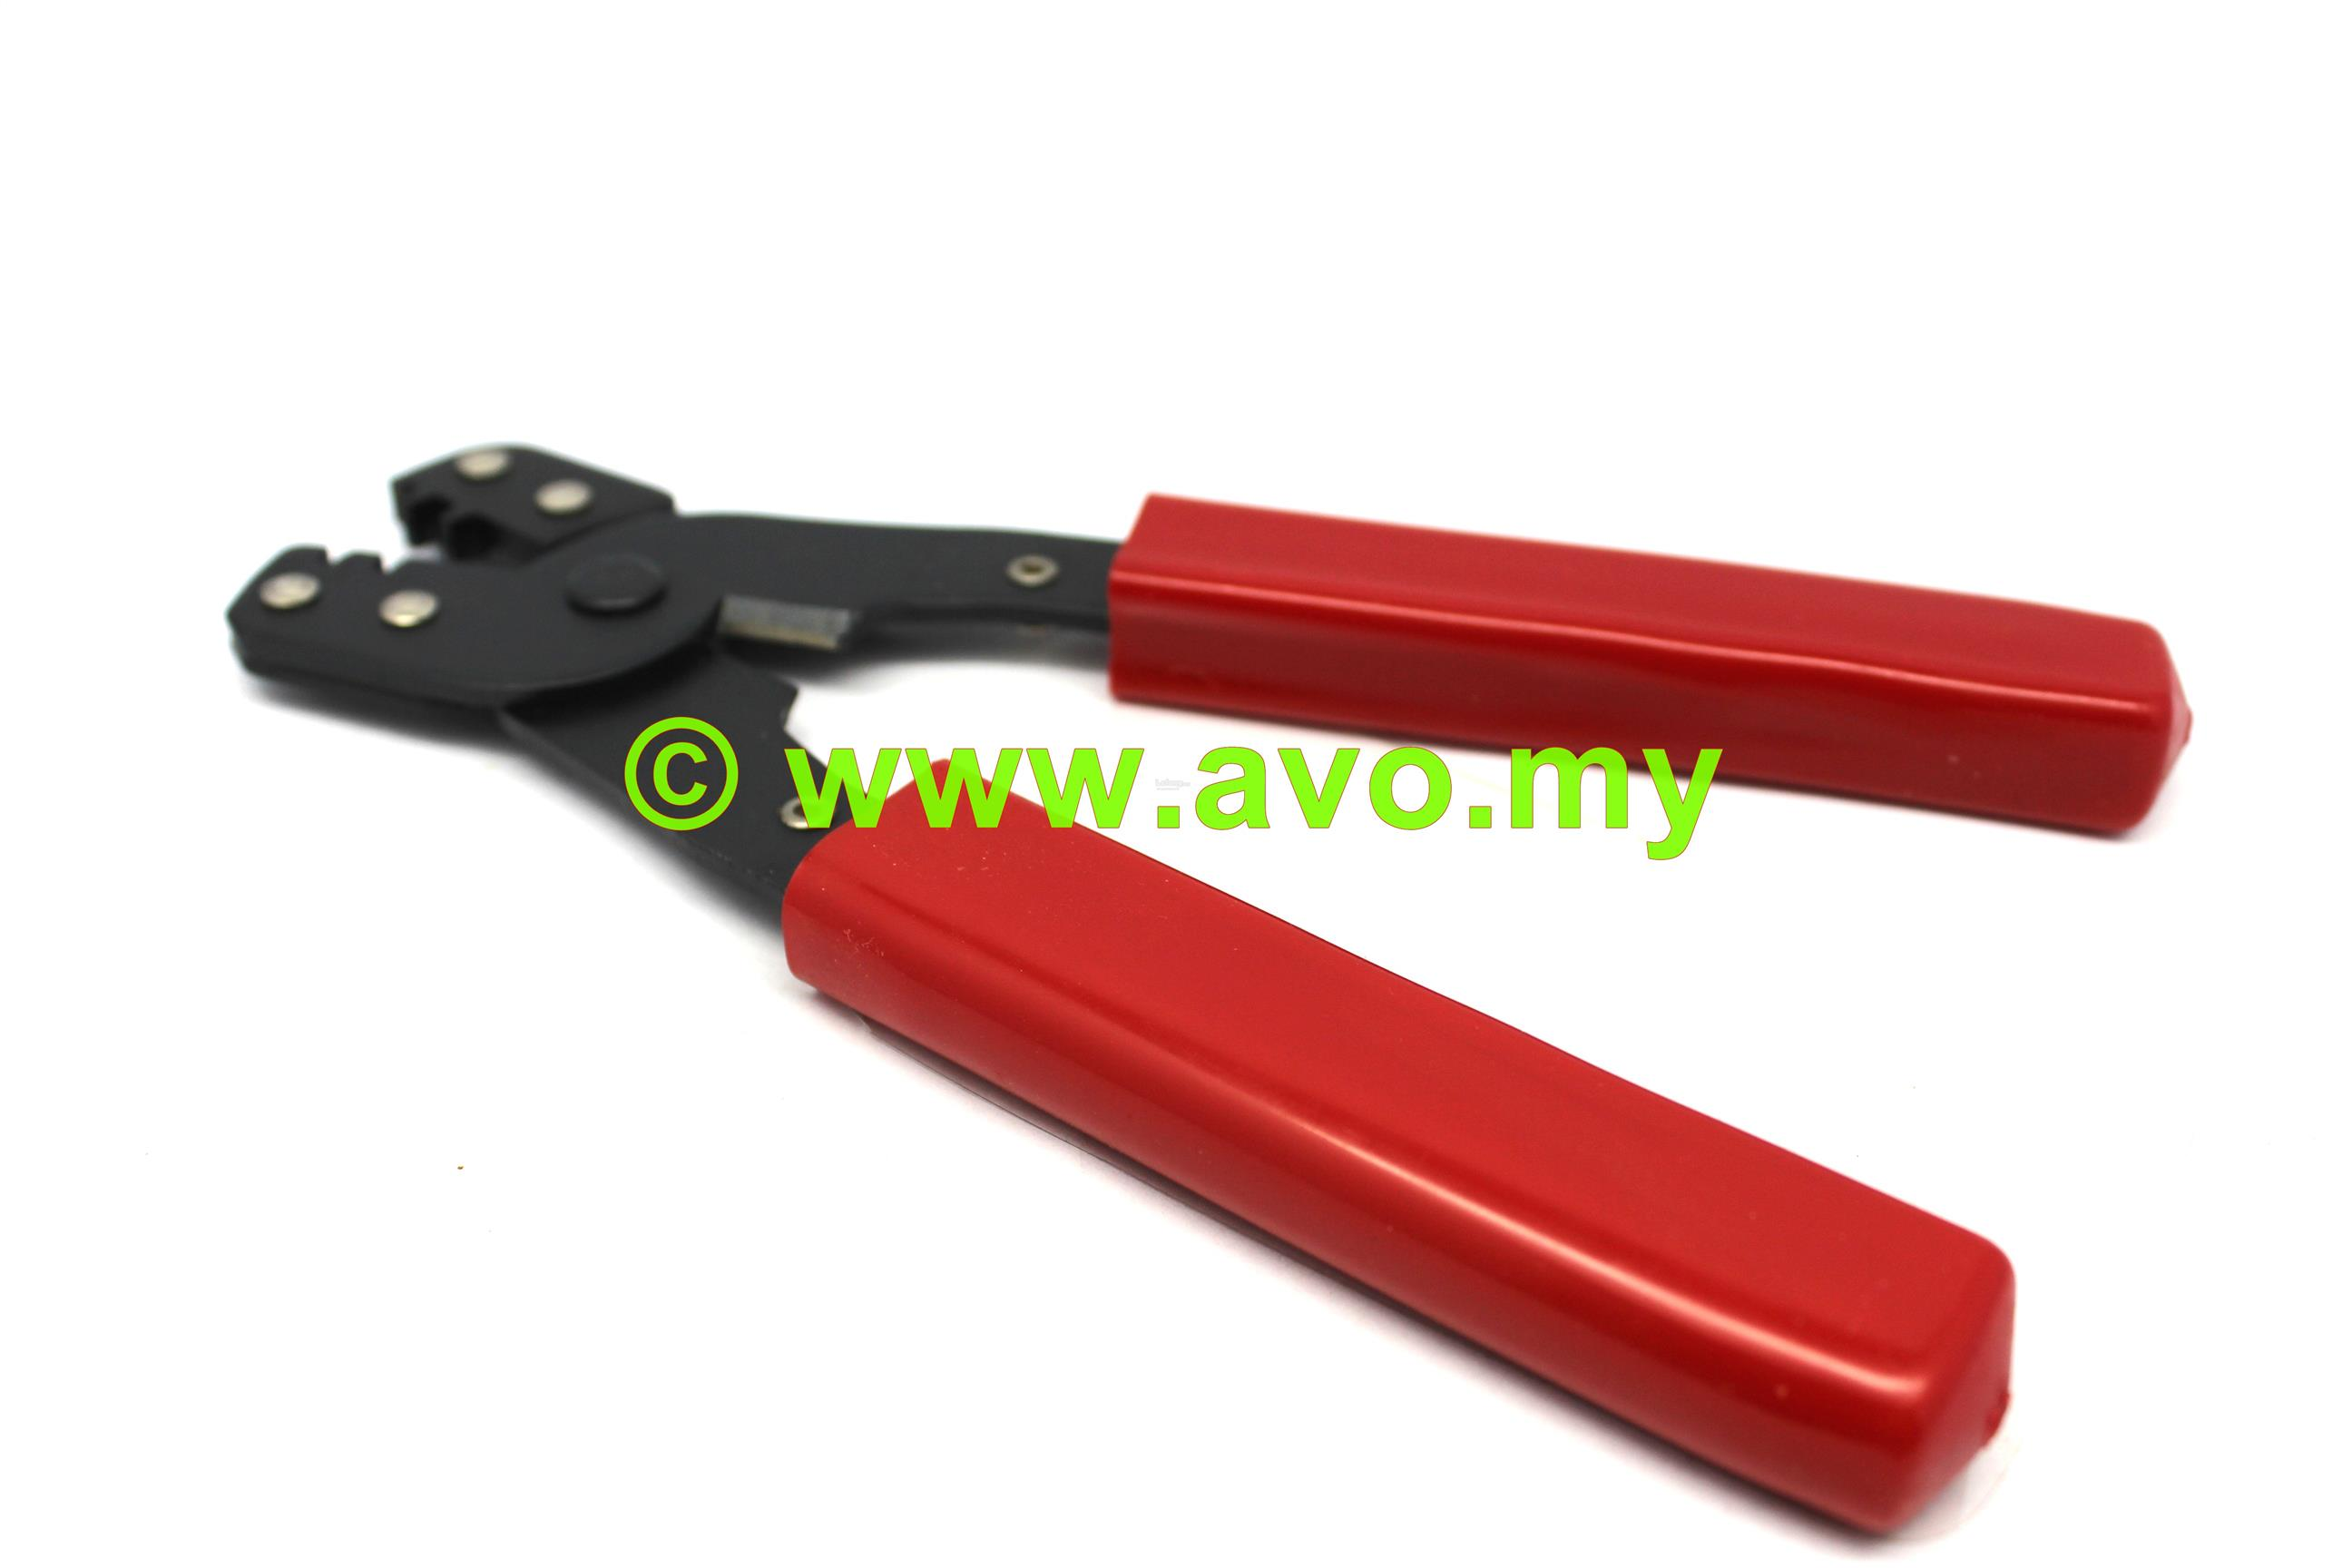 AVOMARINE Crimping Tool For D-Sub 20-28 AWG Wire